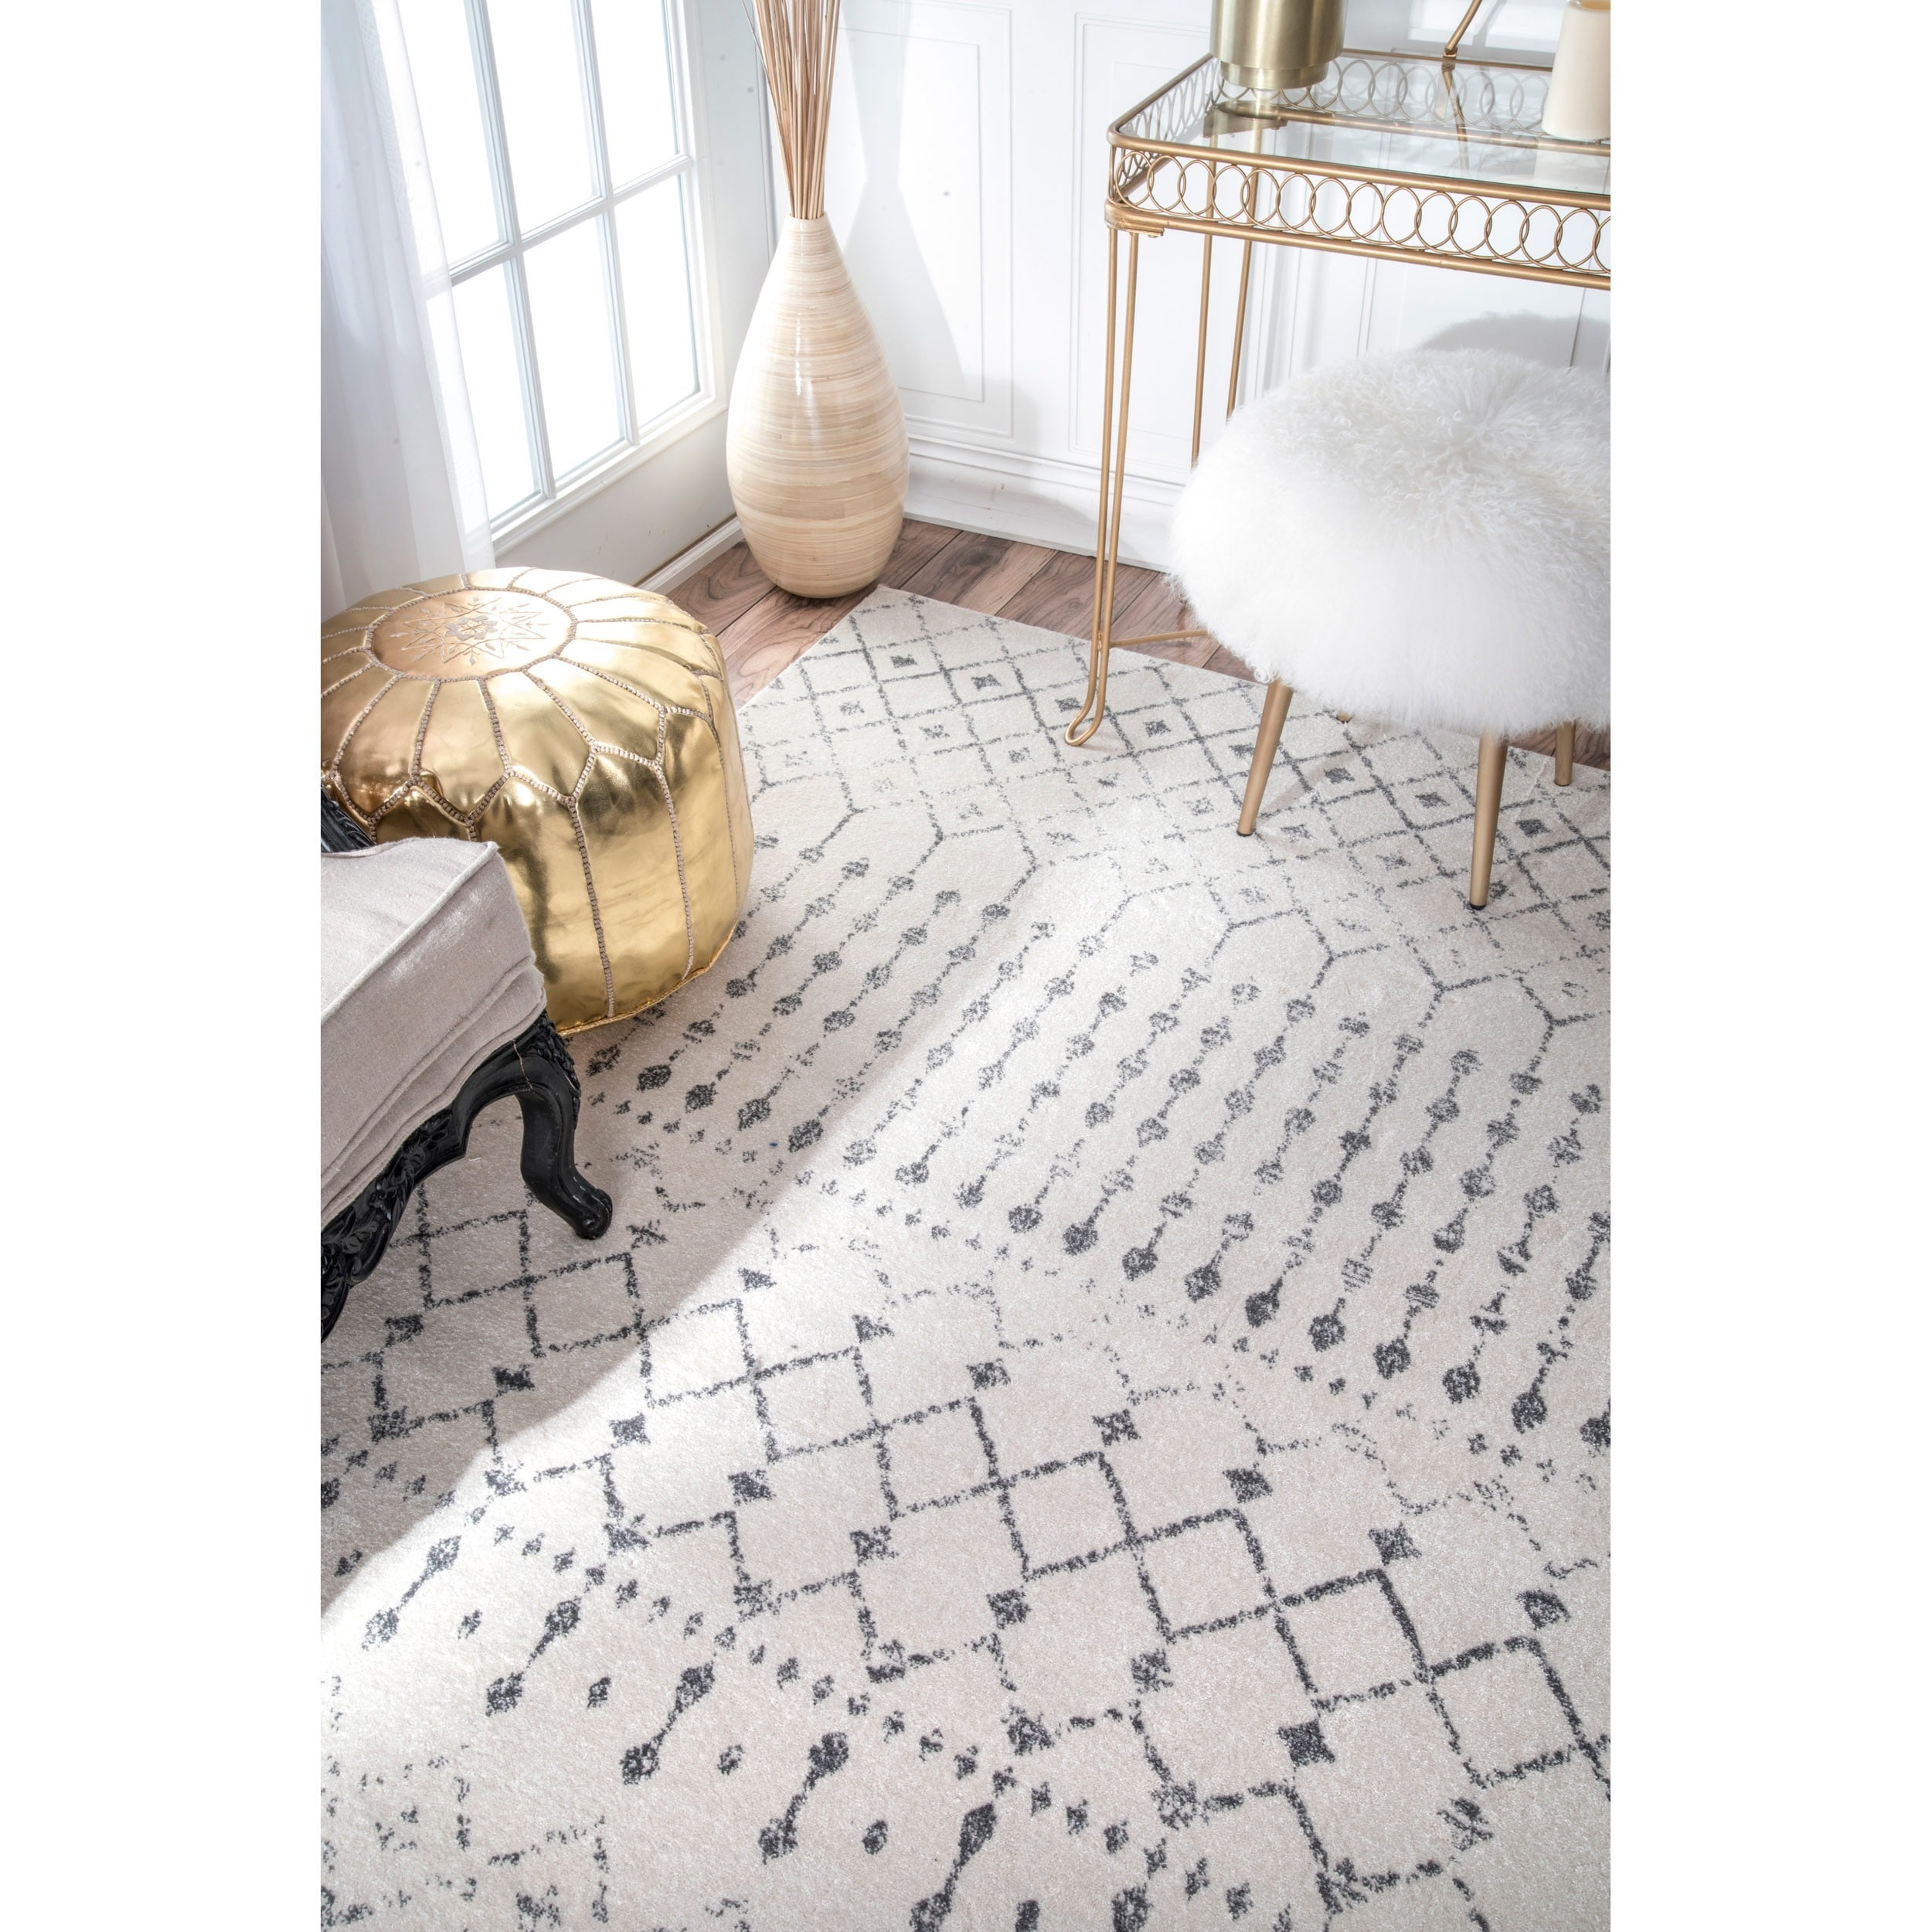 Nuloom Geometric Moroccan Beads Grey Rug 2 X 3 On Free Shipping Orders Over 45 20352147